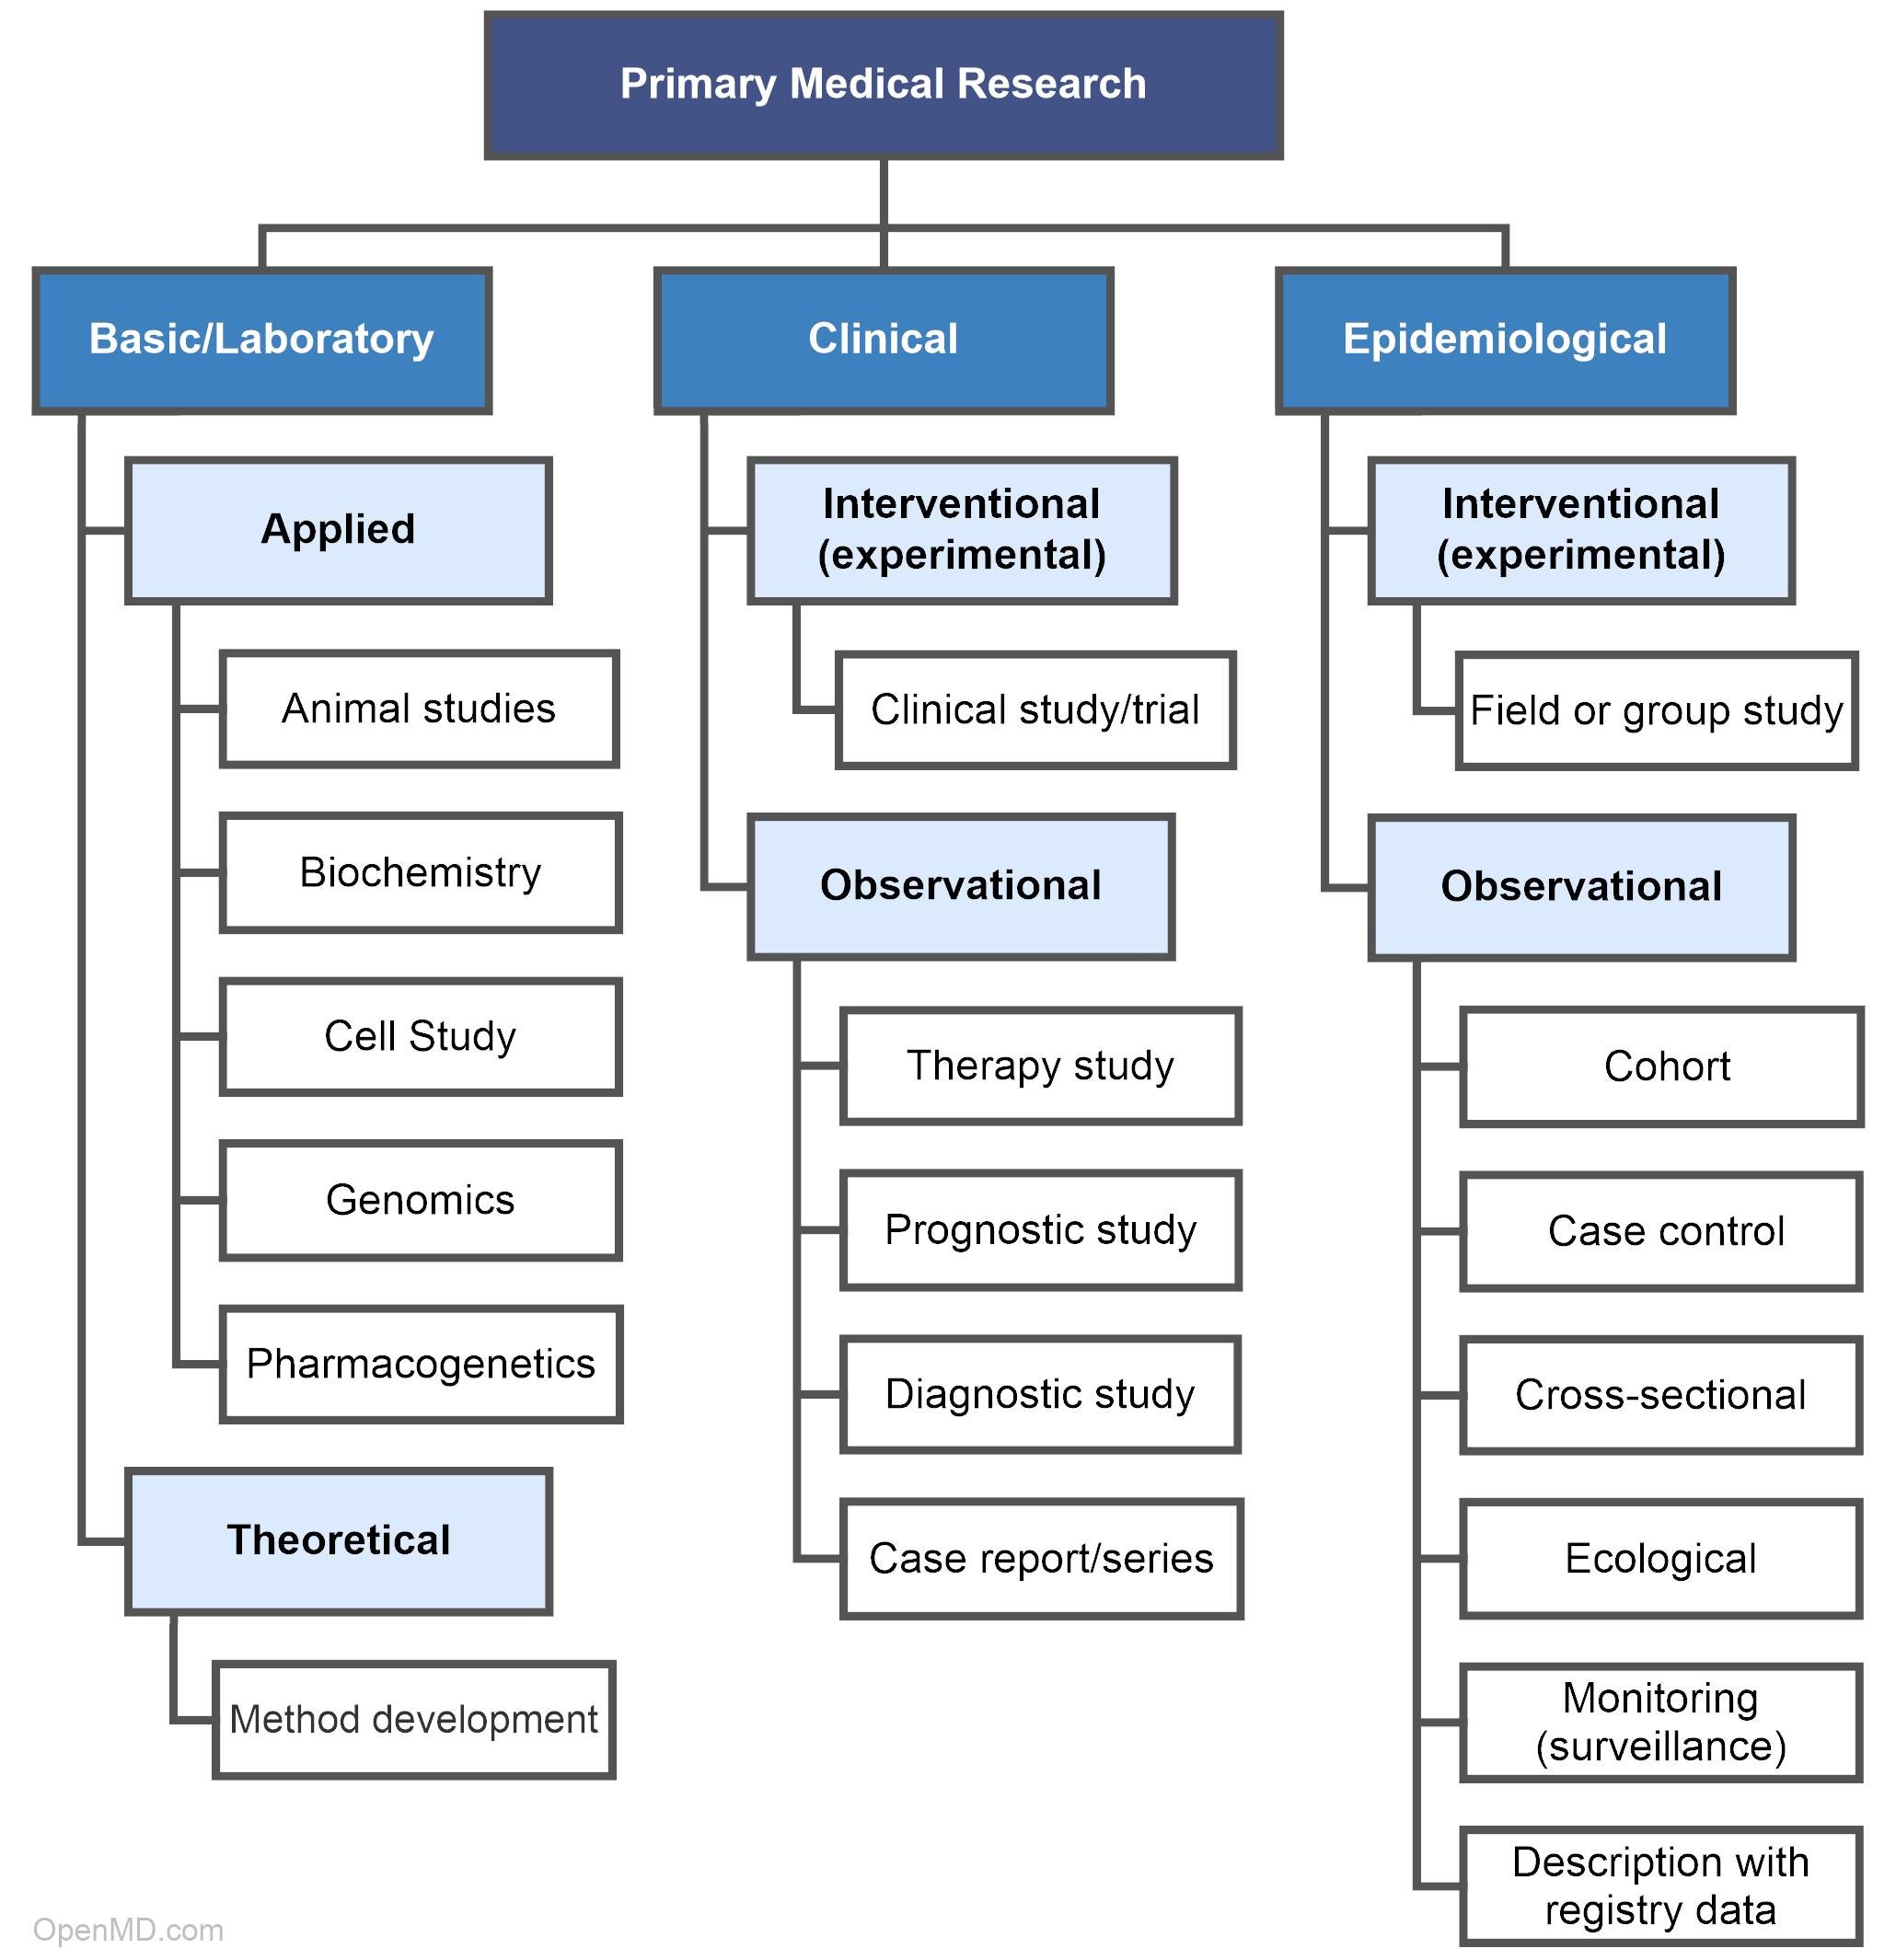 Hierarchy of primary medical research